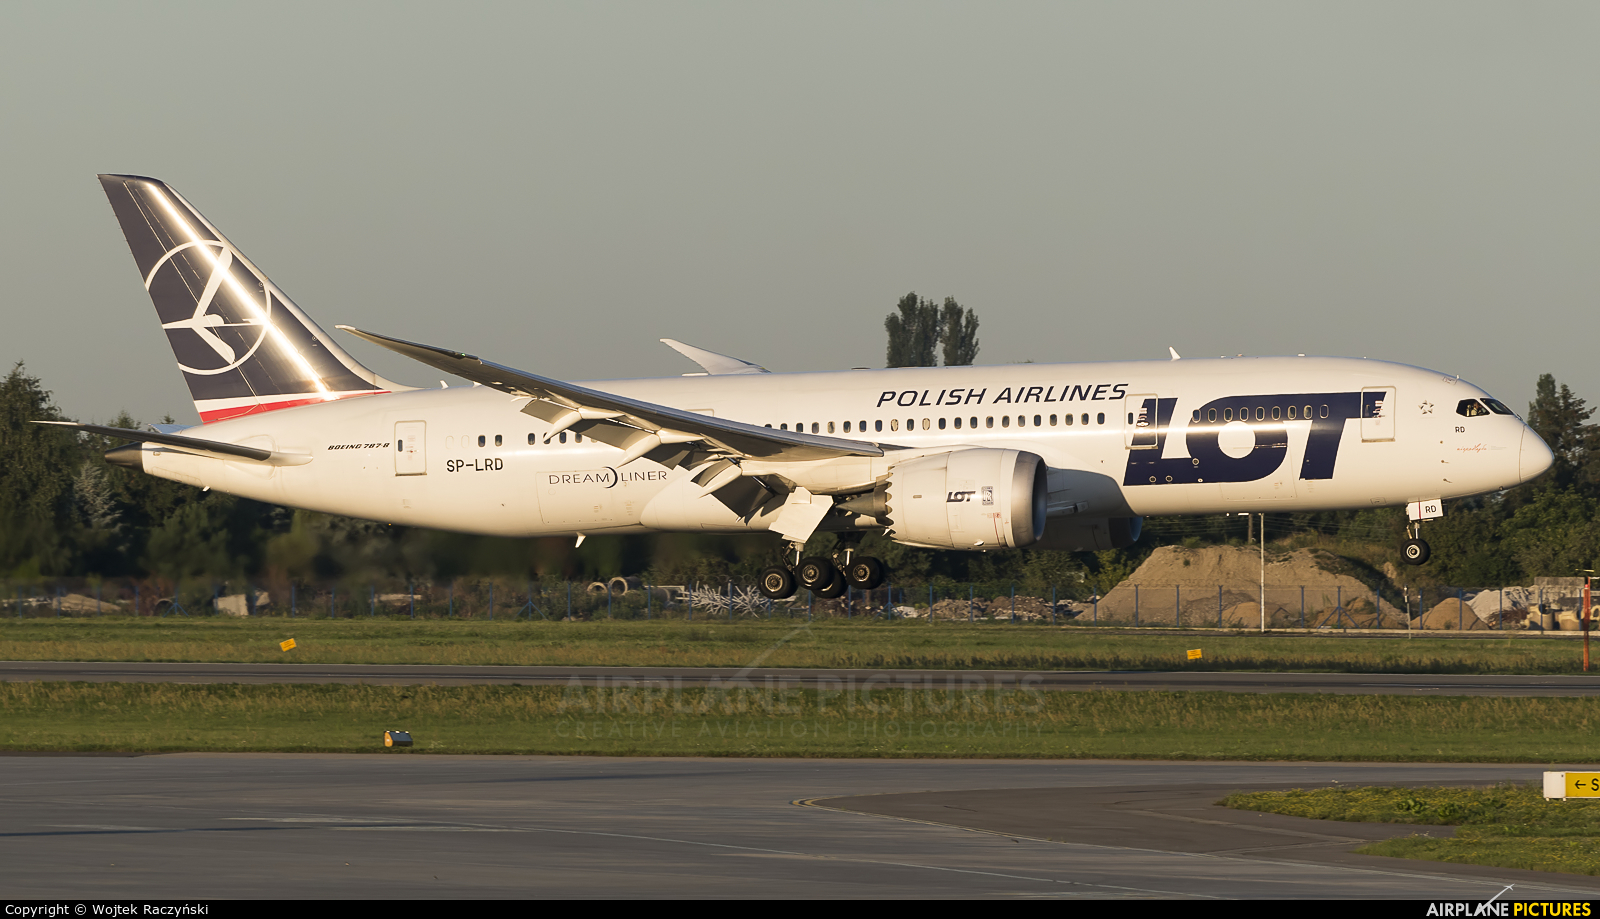 LOT - Polish Airlines SP-LRD aircraft at Warsaw - Frederic Chopin